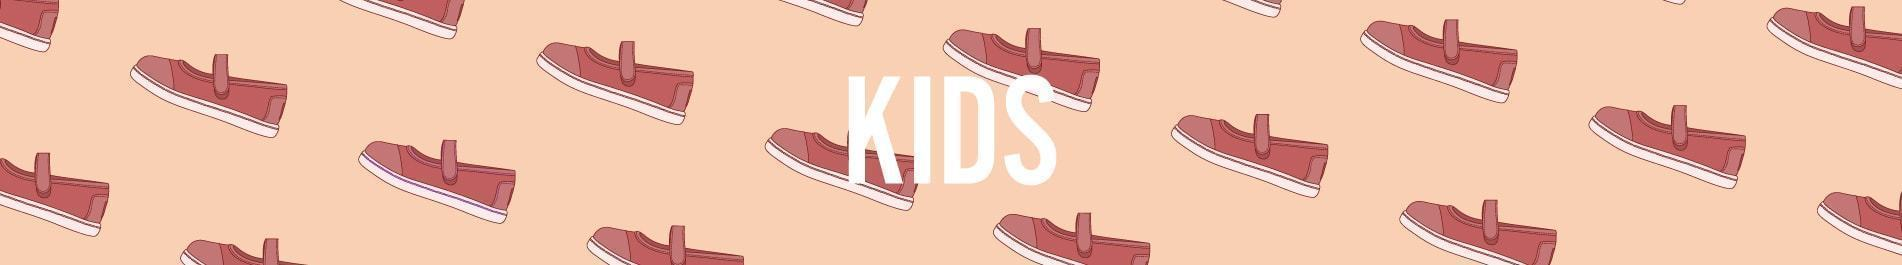 Kid's Shoes